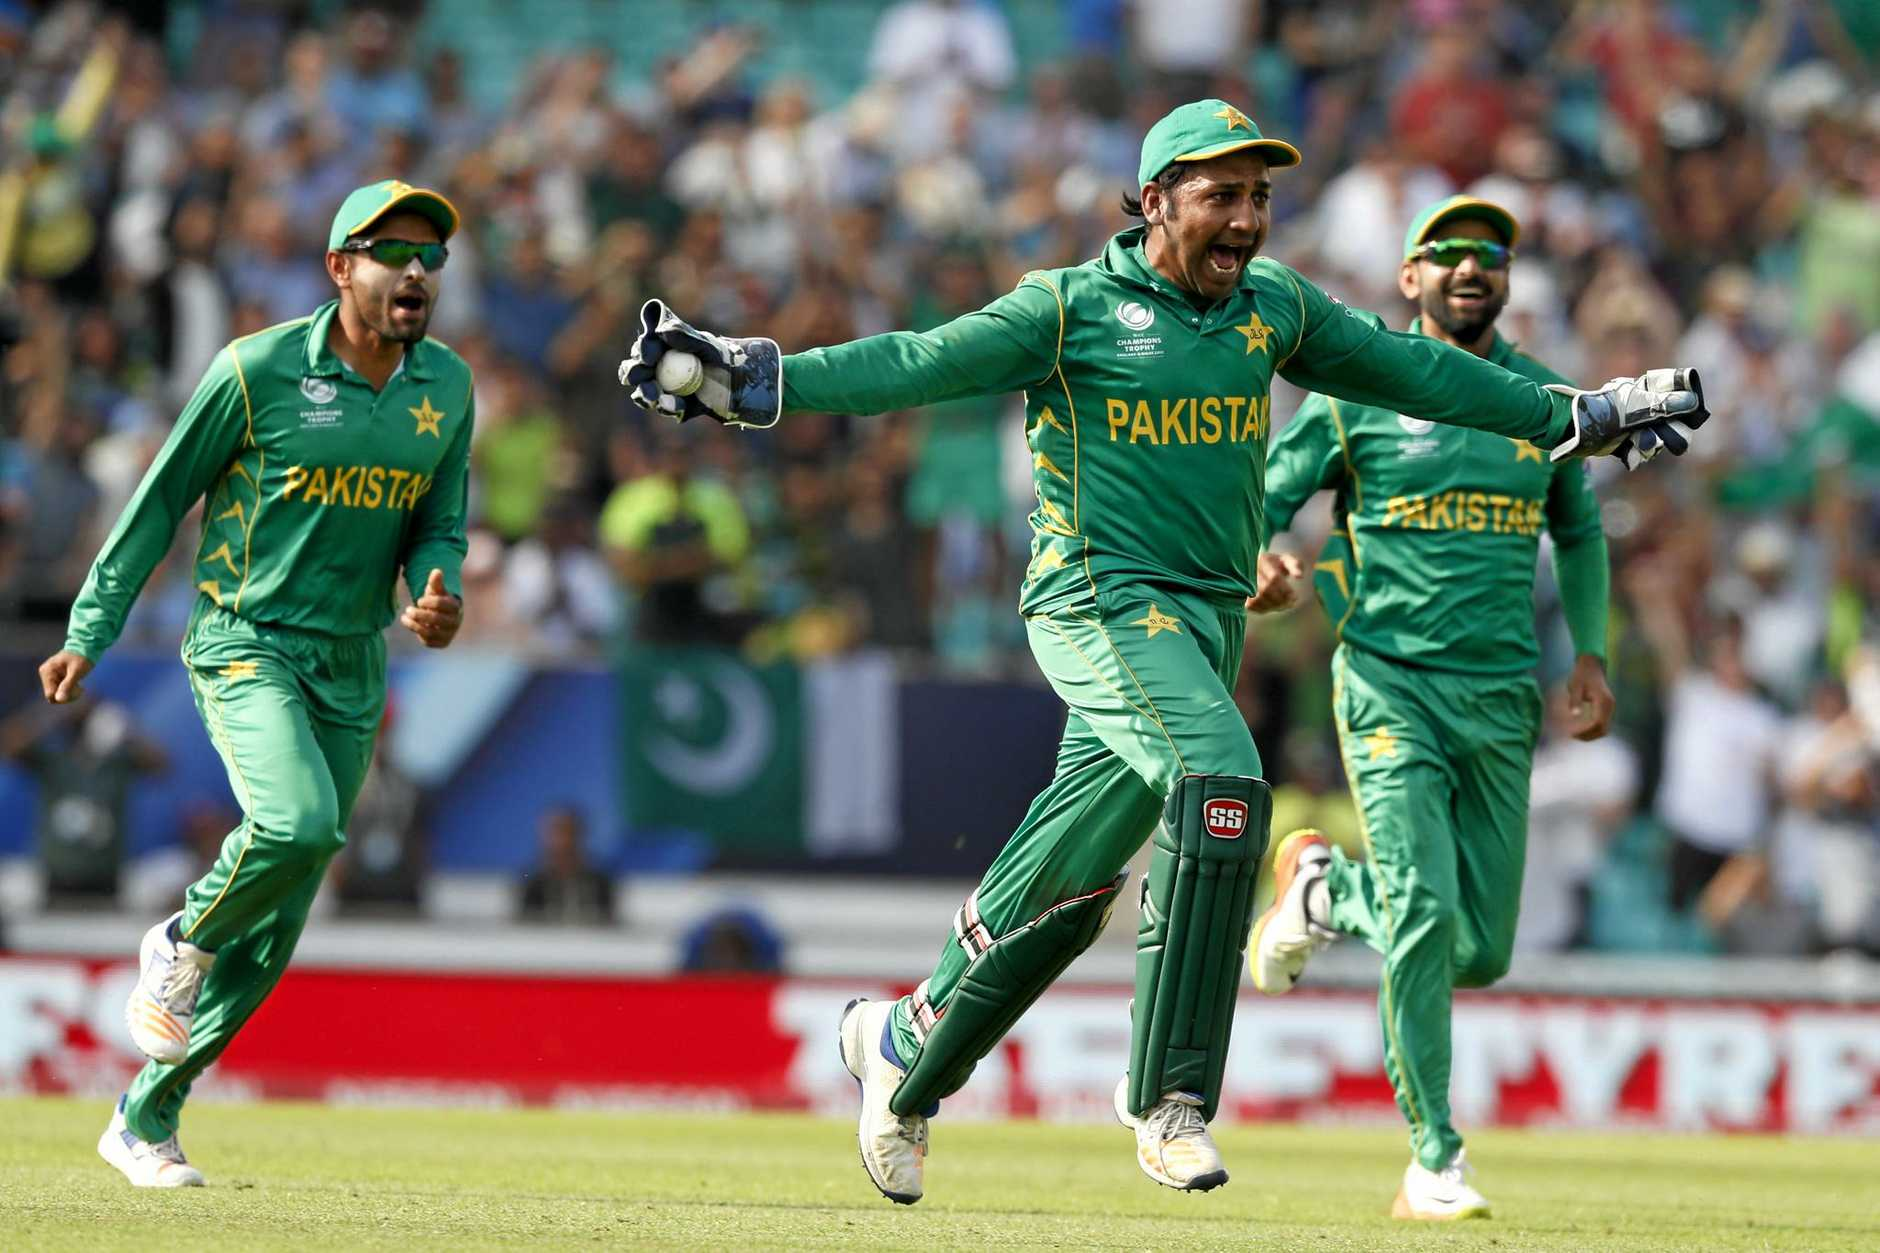 Pakistan captain Sarfraz Ahmed celebrates after claiming the catch to dismiss the last of the Indian batsmen in the ICC Champions Trophy final at The Oval in London.